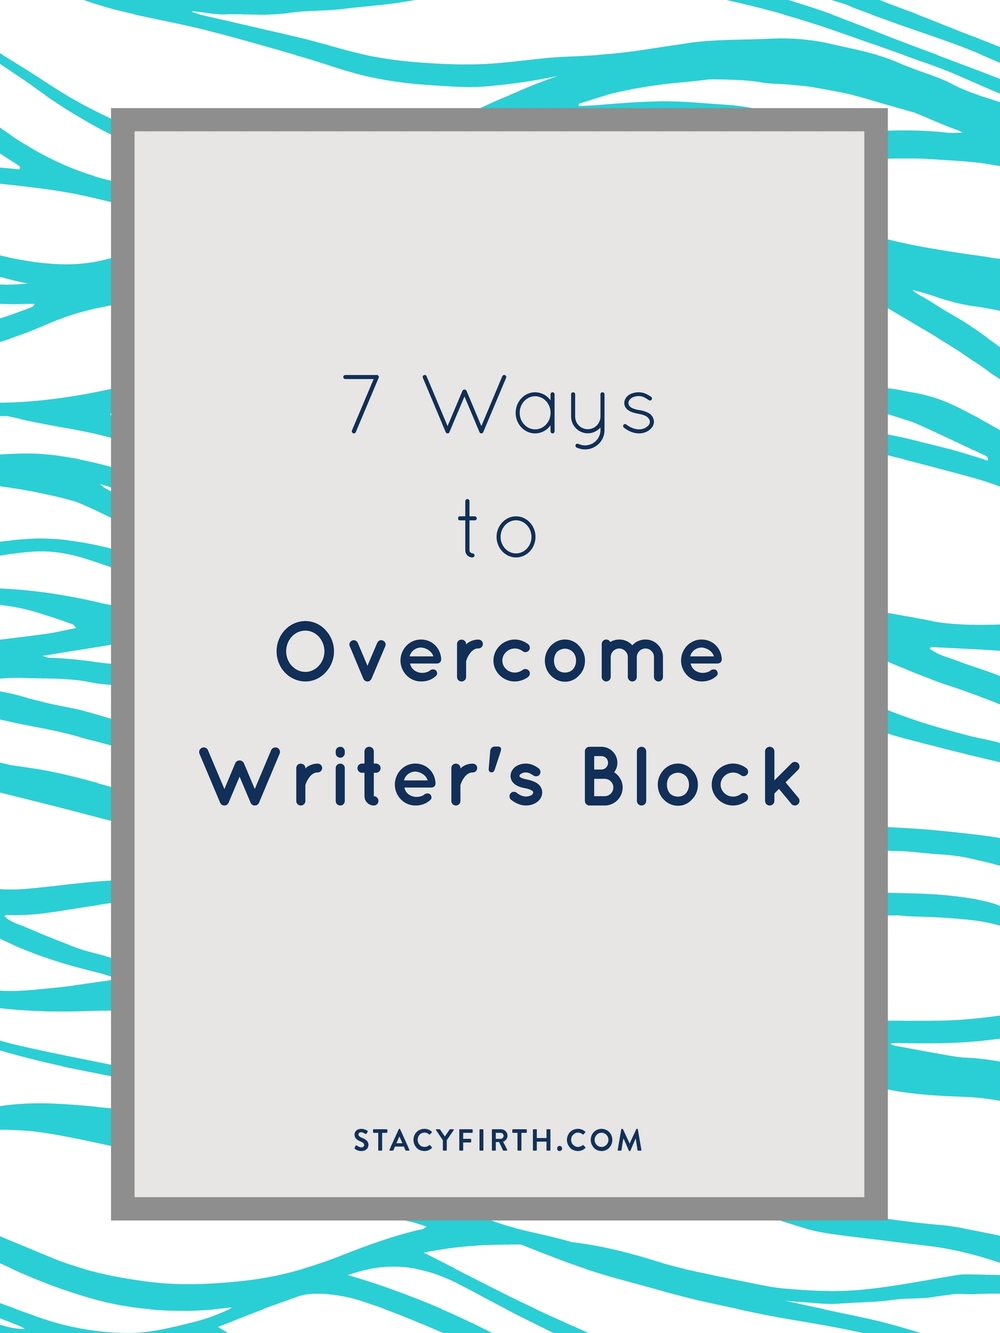 7 Ways to Overcome Writer's Block